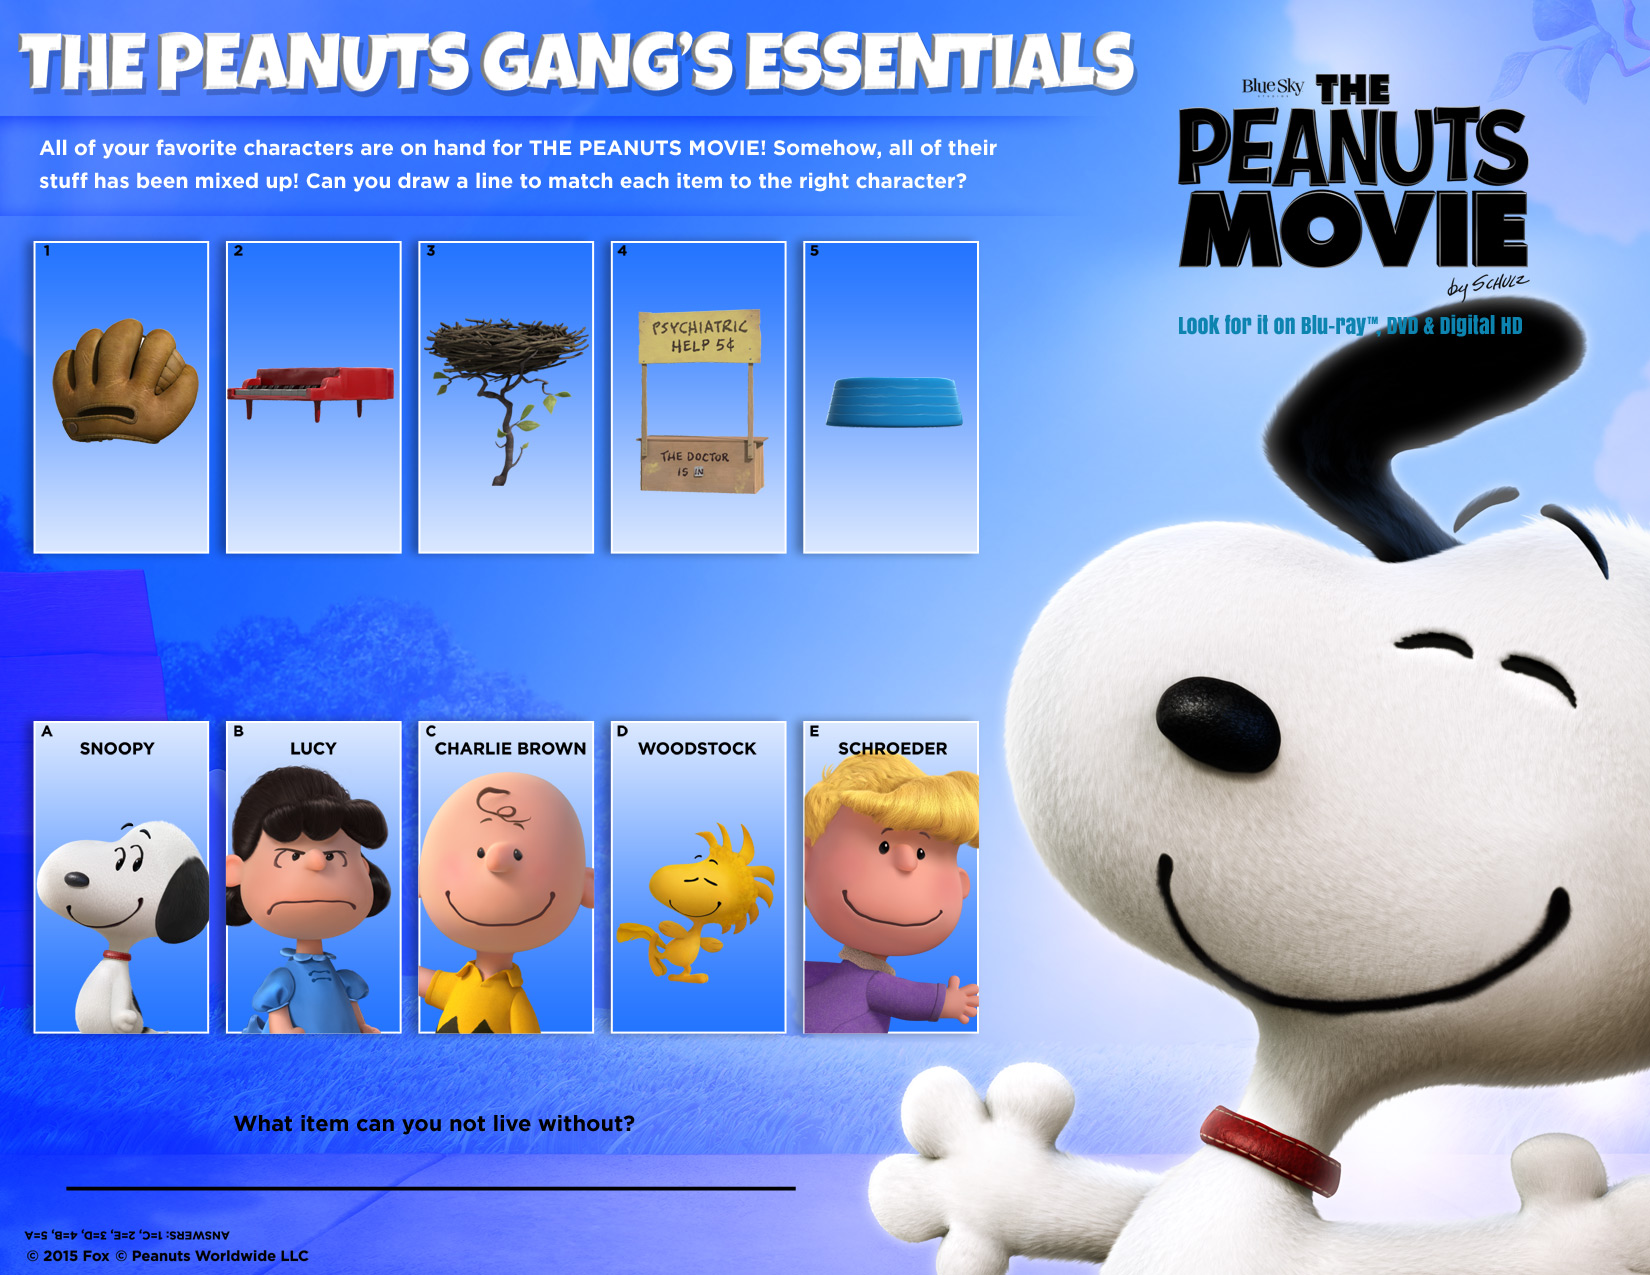 peanuts_toolkit_activities_gangessentials